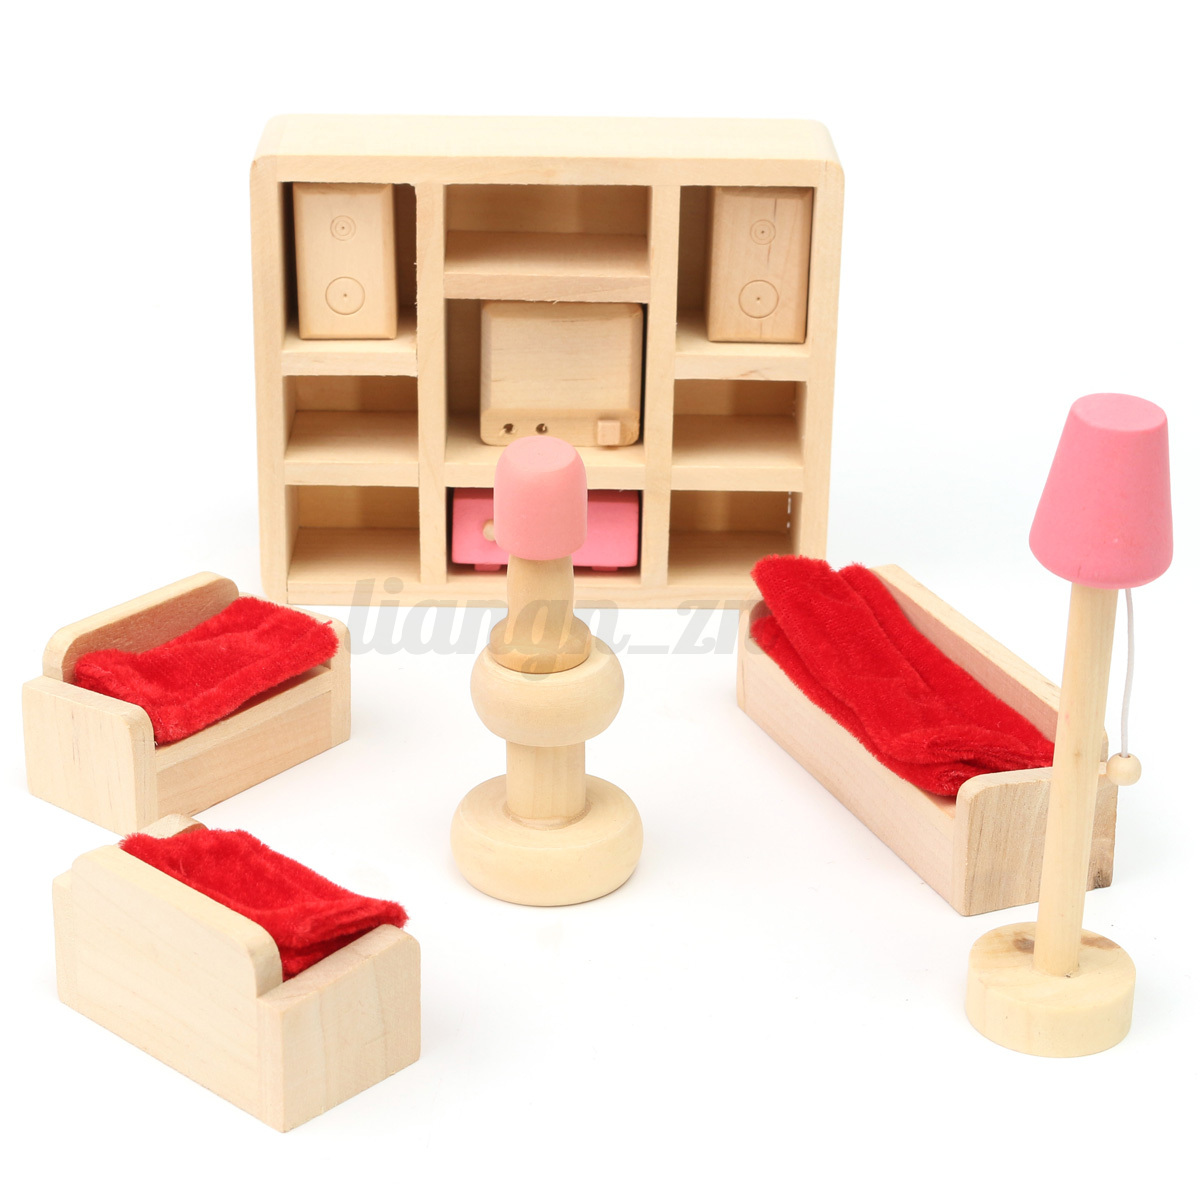 Au xmas gift wooden doll house miniature family children furniture set kit toys ebay Wooden childrens furniture